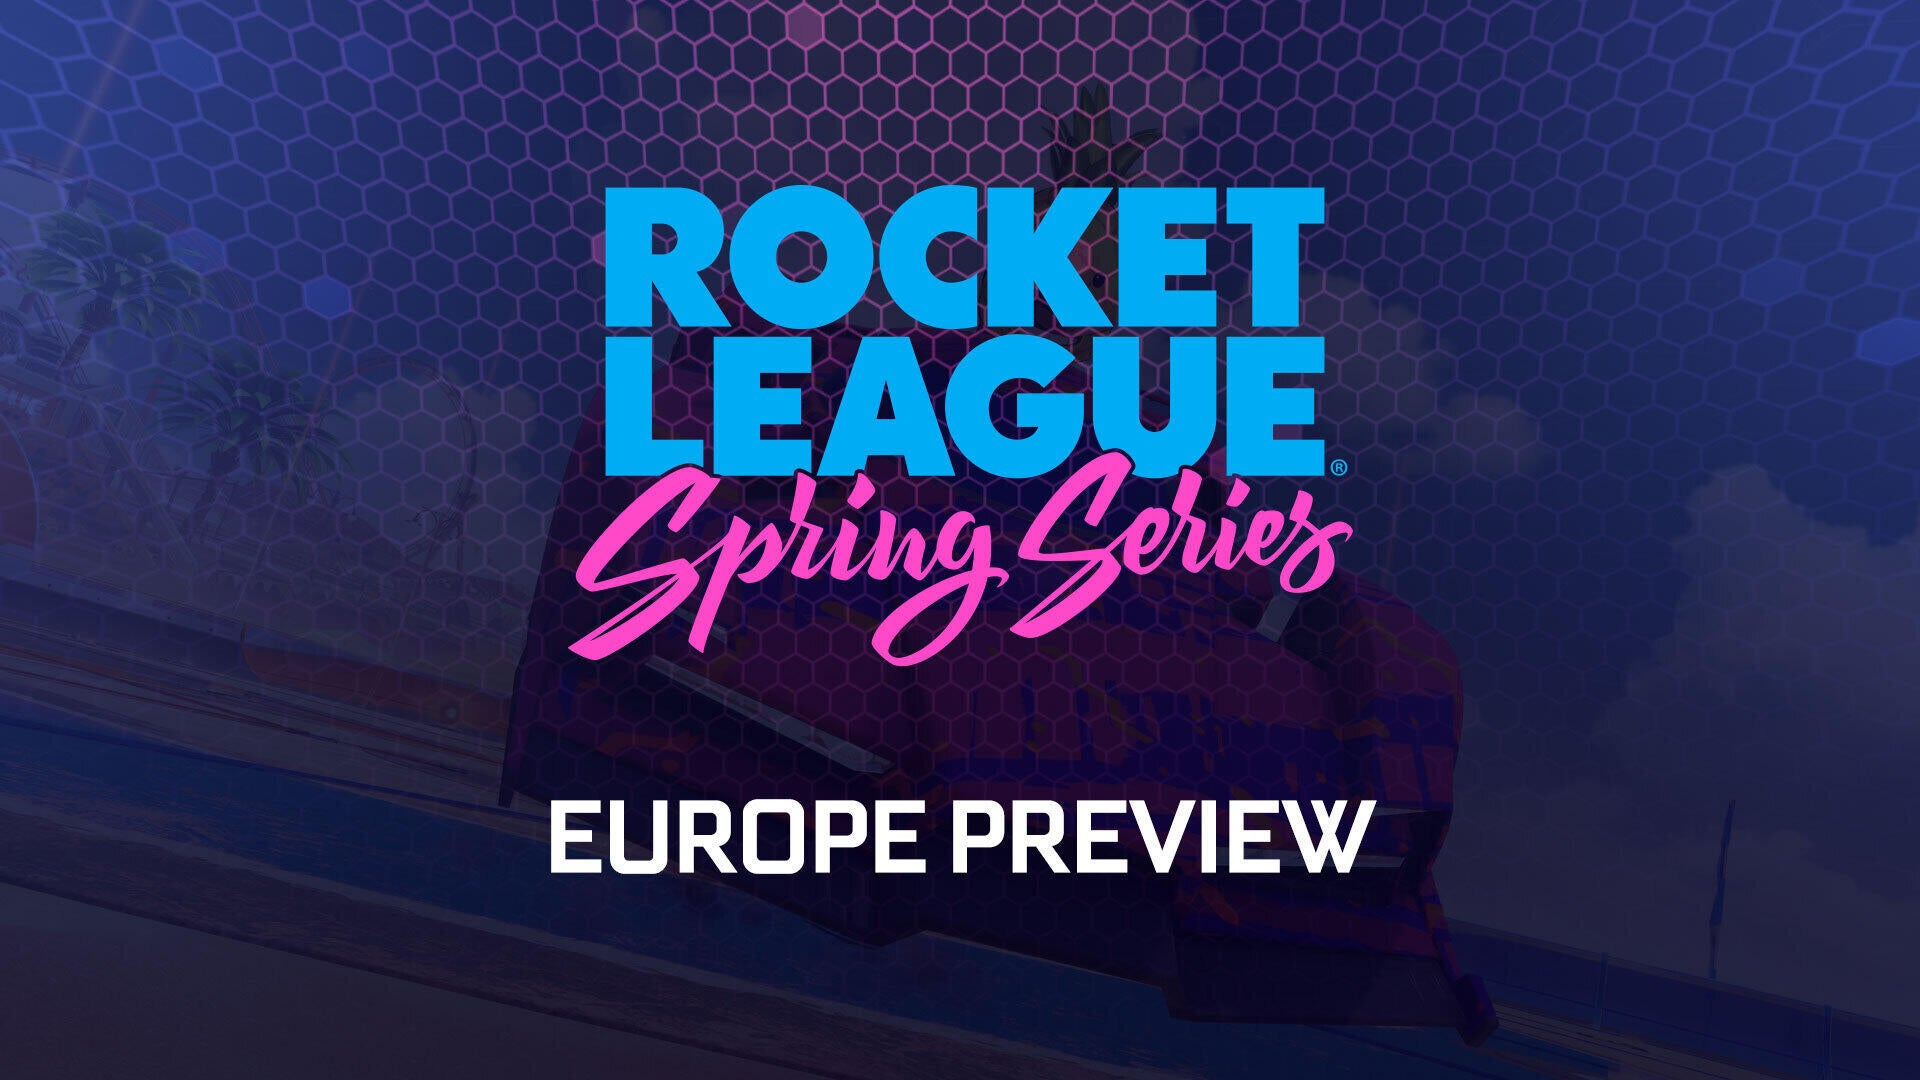 Spring Series: Europe Preview Image